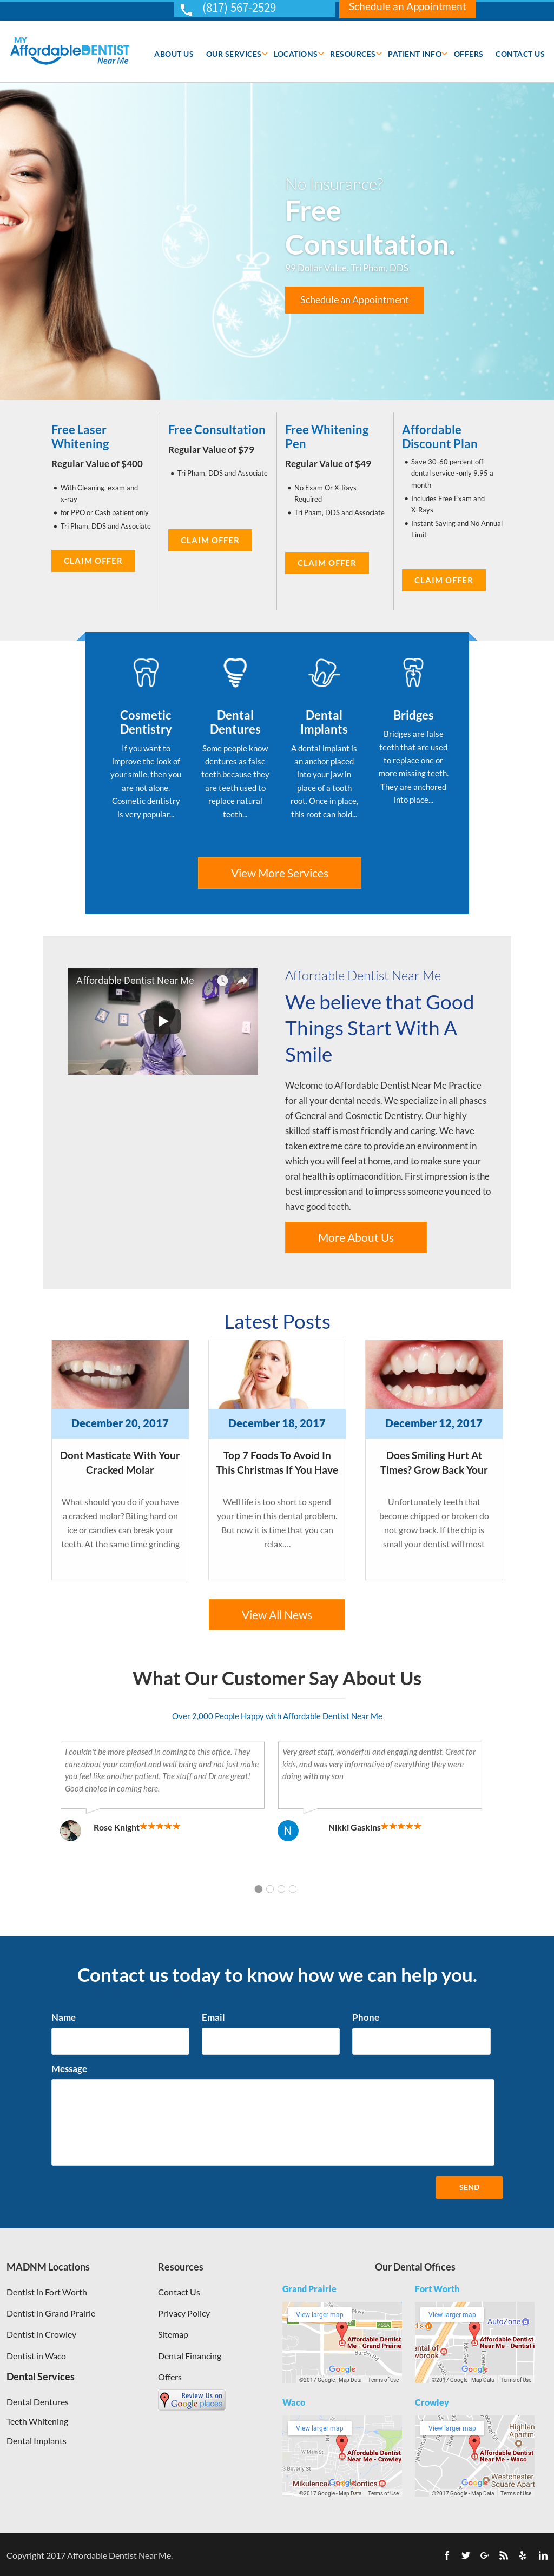 Affordable Dentist Near Me Competitors, Revenue and